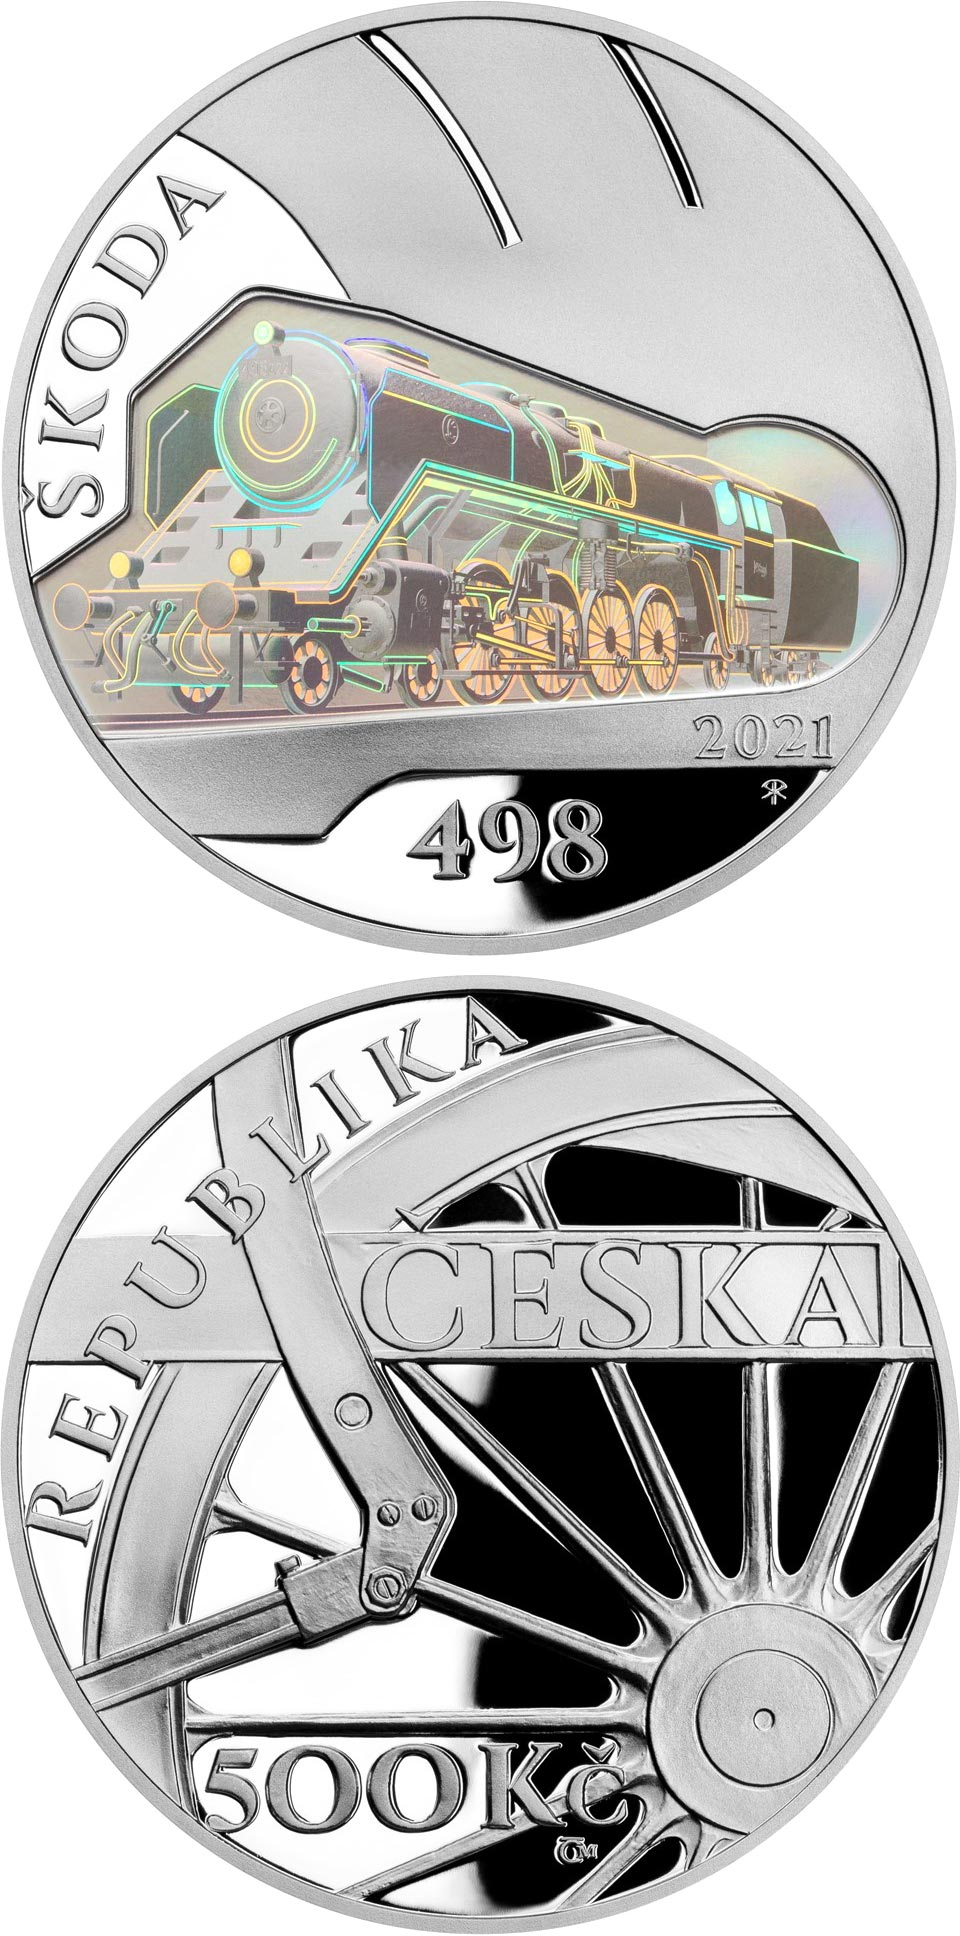 Image of 500 koruna coin - Škoda 498 Albatros steam locomotive | Czech Republic 2021.  The Silver coin is of Proof, BU quality.